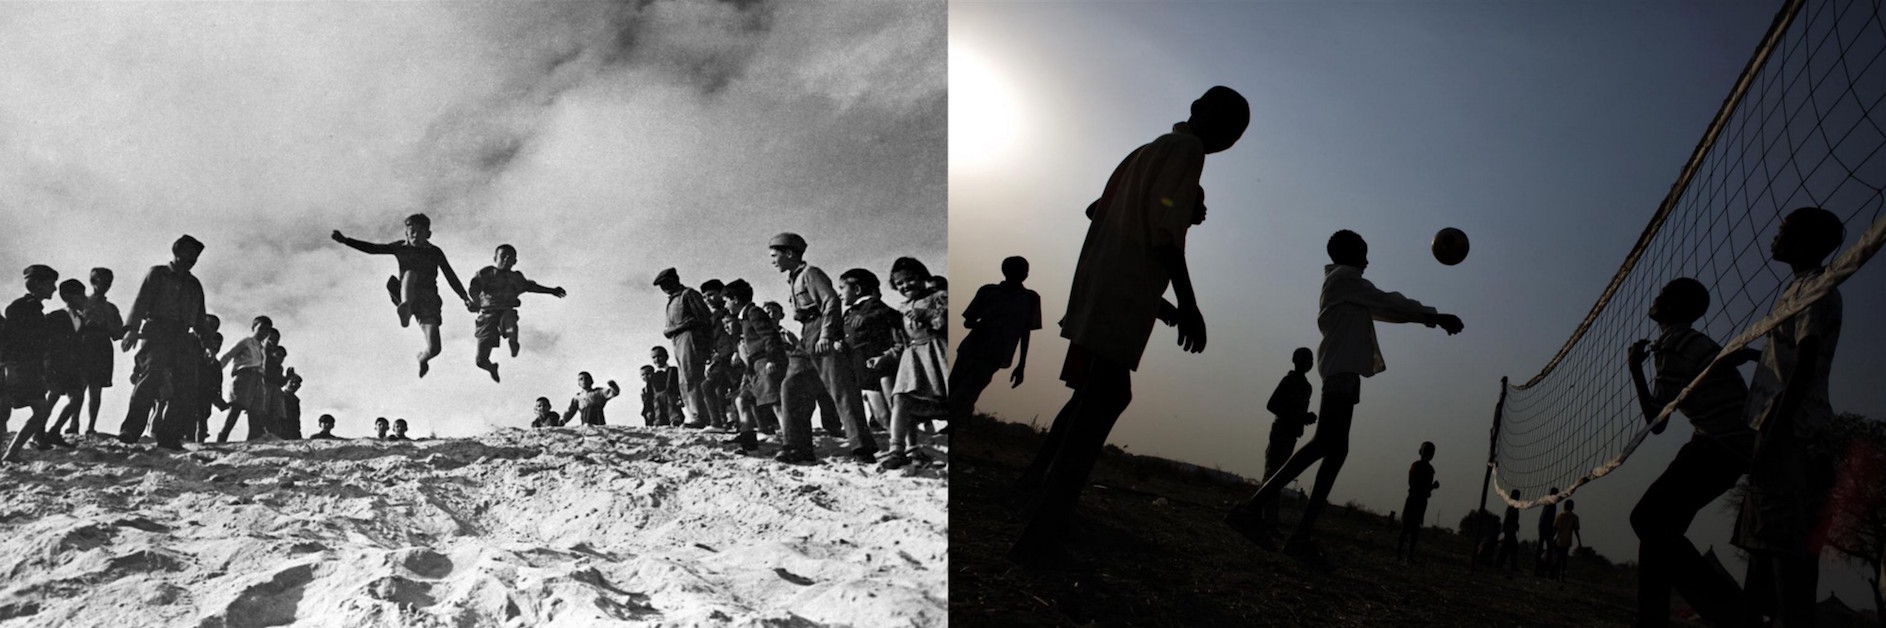 (Left) In 1947 in Egypt, boys are cheered on during the long-jump event of a sports competition at a refugee camp. Eighteen months before, these children were at war. (Right) In 2012, boys displaced by inter-ethnic violence play volleyball, outside a chil